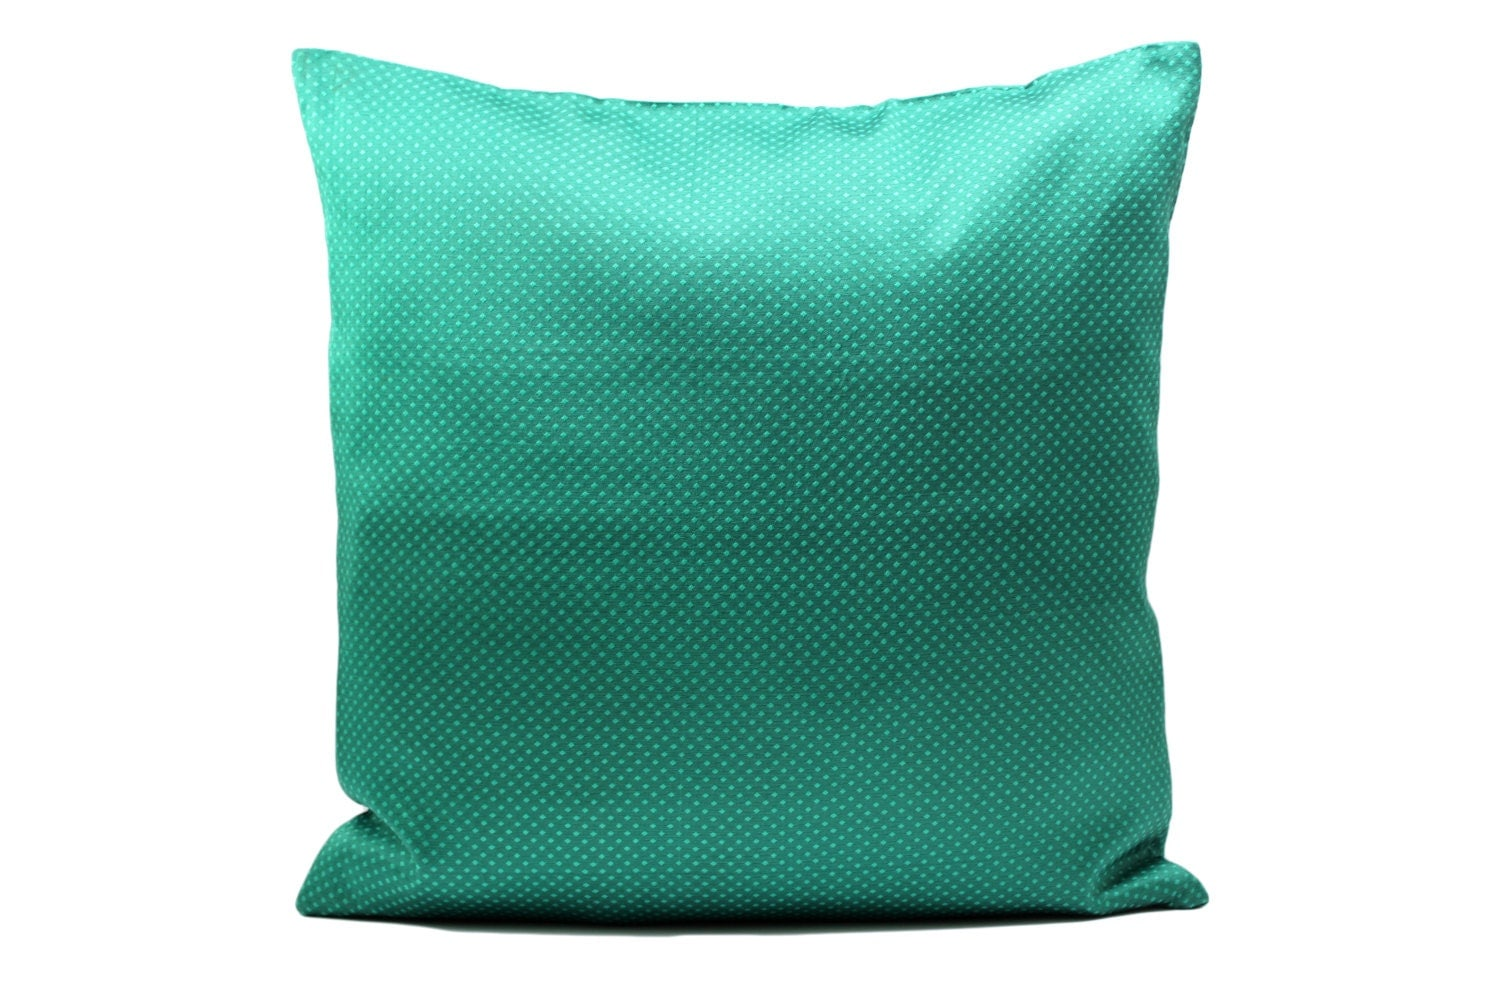 Mint Green And Brown Throw Pillows : Mint Green Pillow coverDecorative throw Pillow Cover by Fabricasia